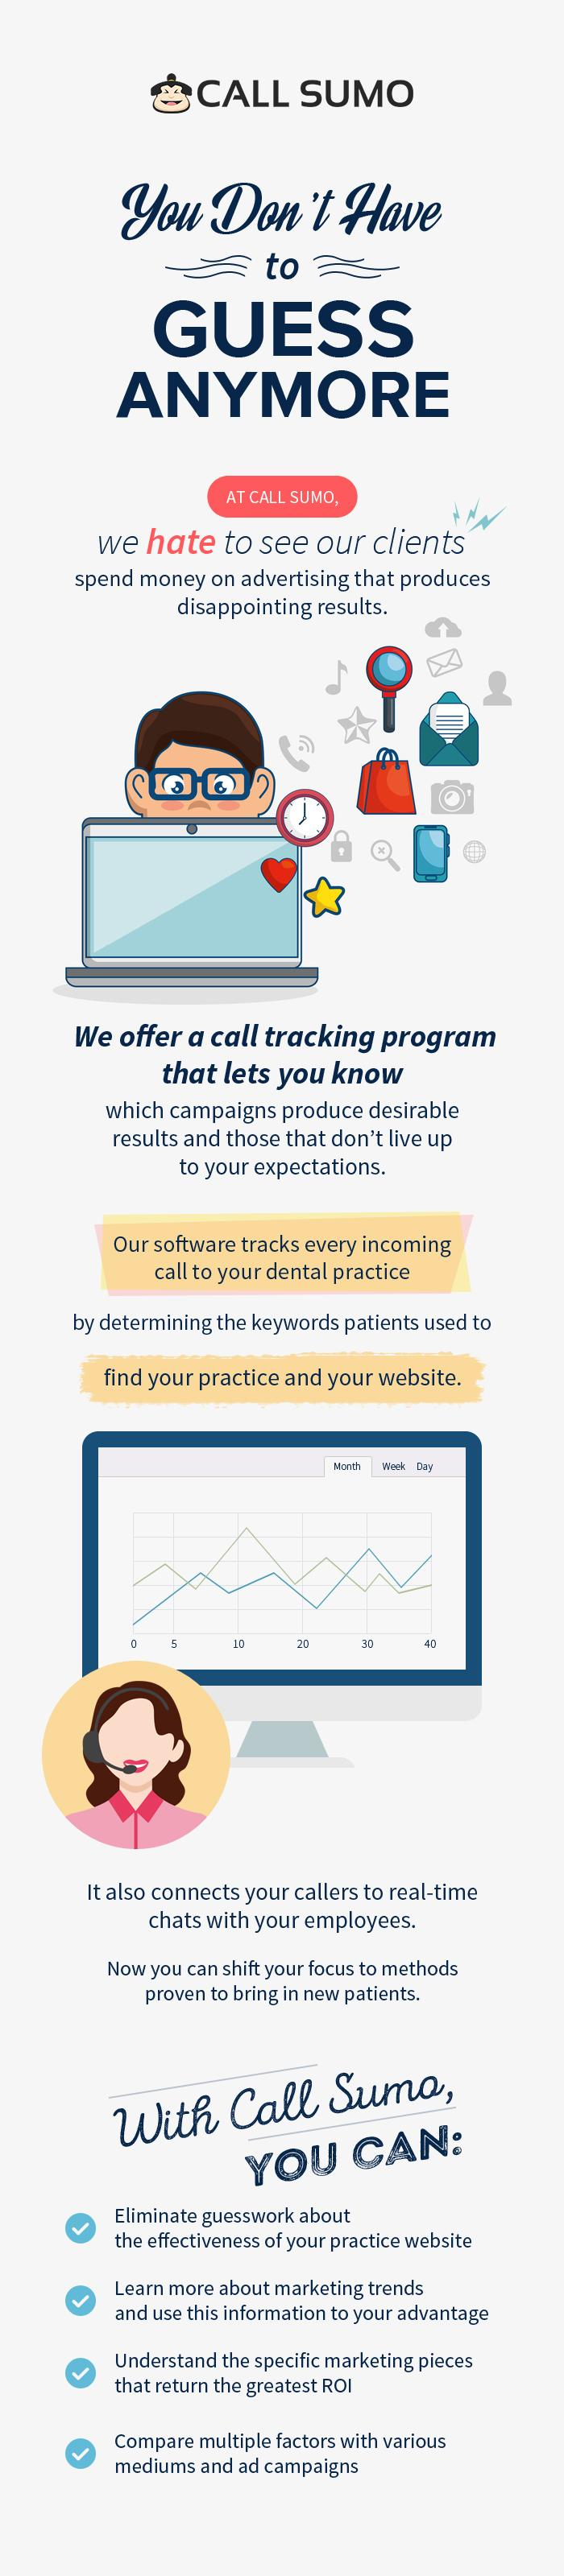 Call Sumo - A Reliable Call Tracking Software for Dentists